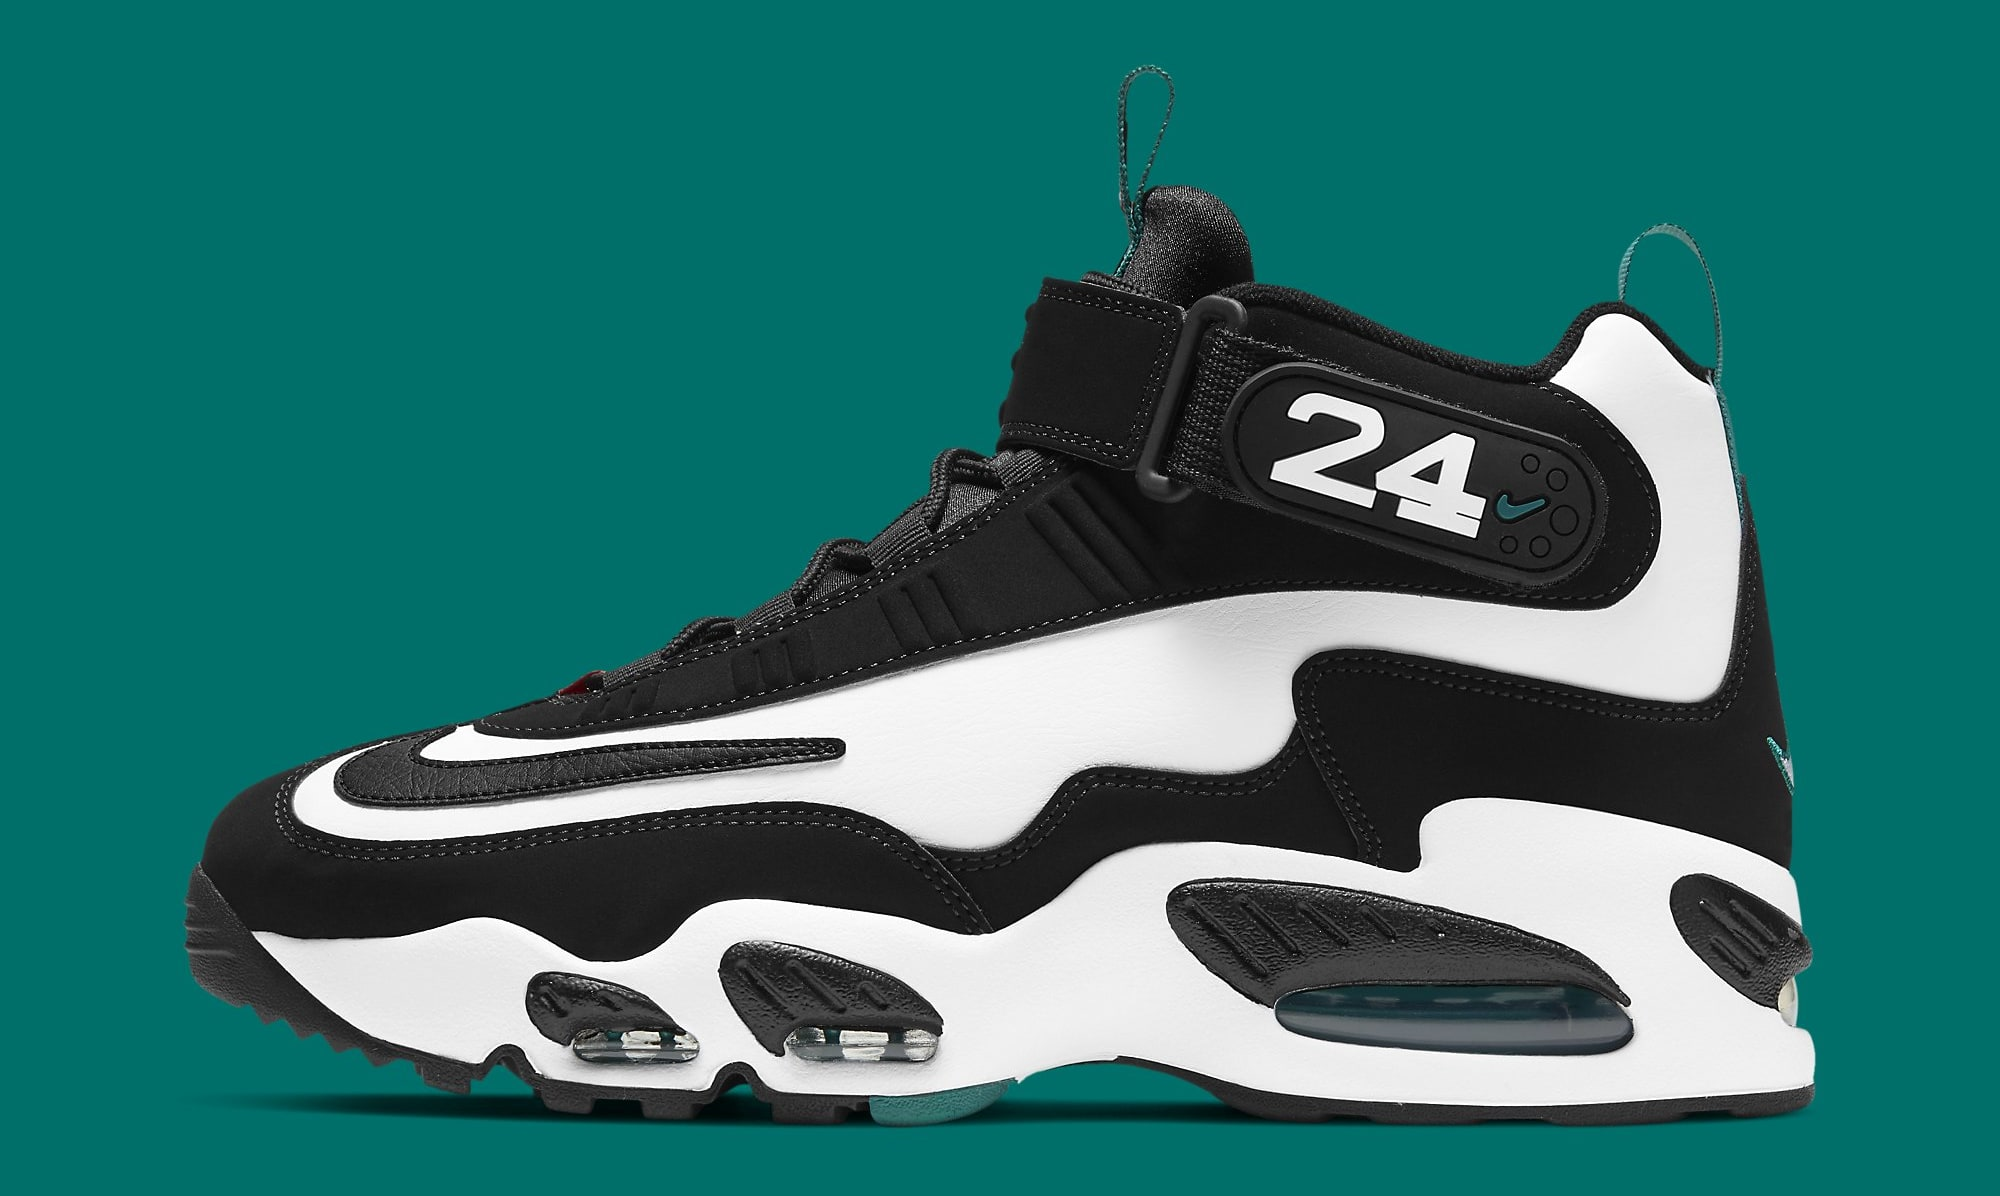 Nike Air Griffey Max 1 'Freshwater' 2021 DD8558-100 Lateral